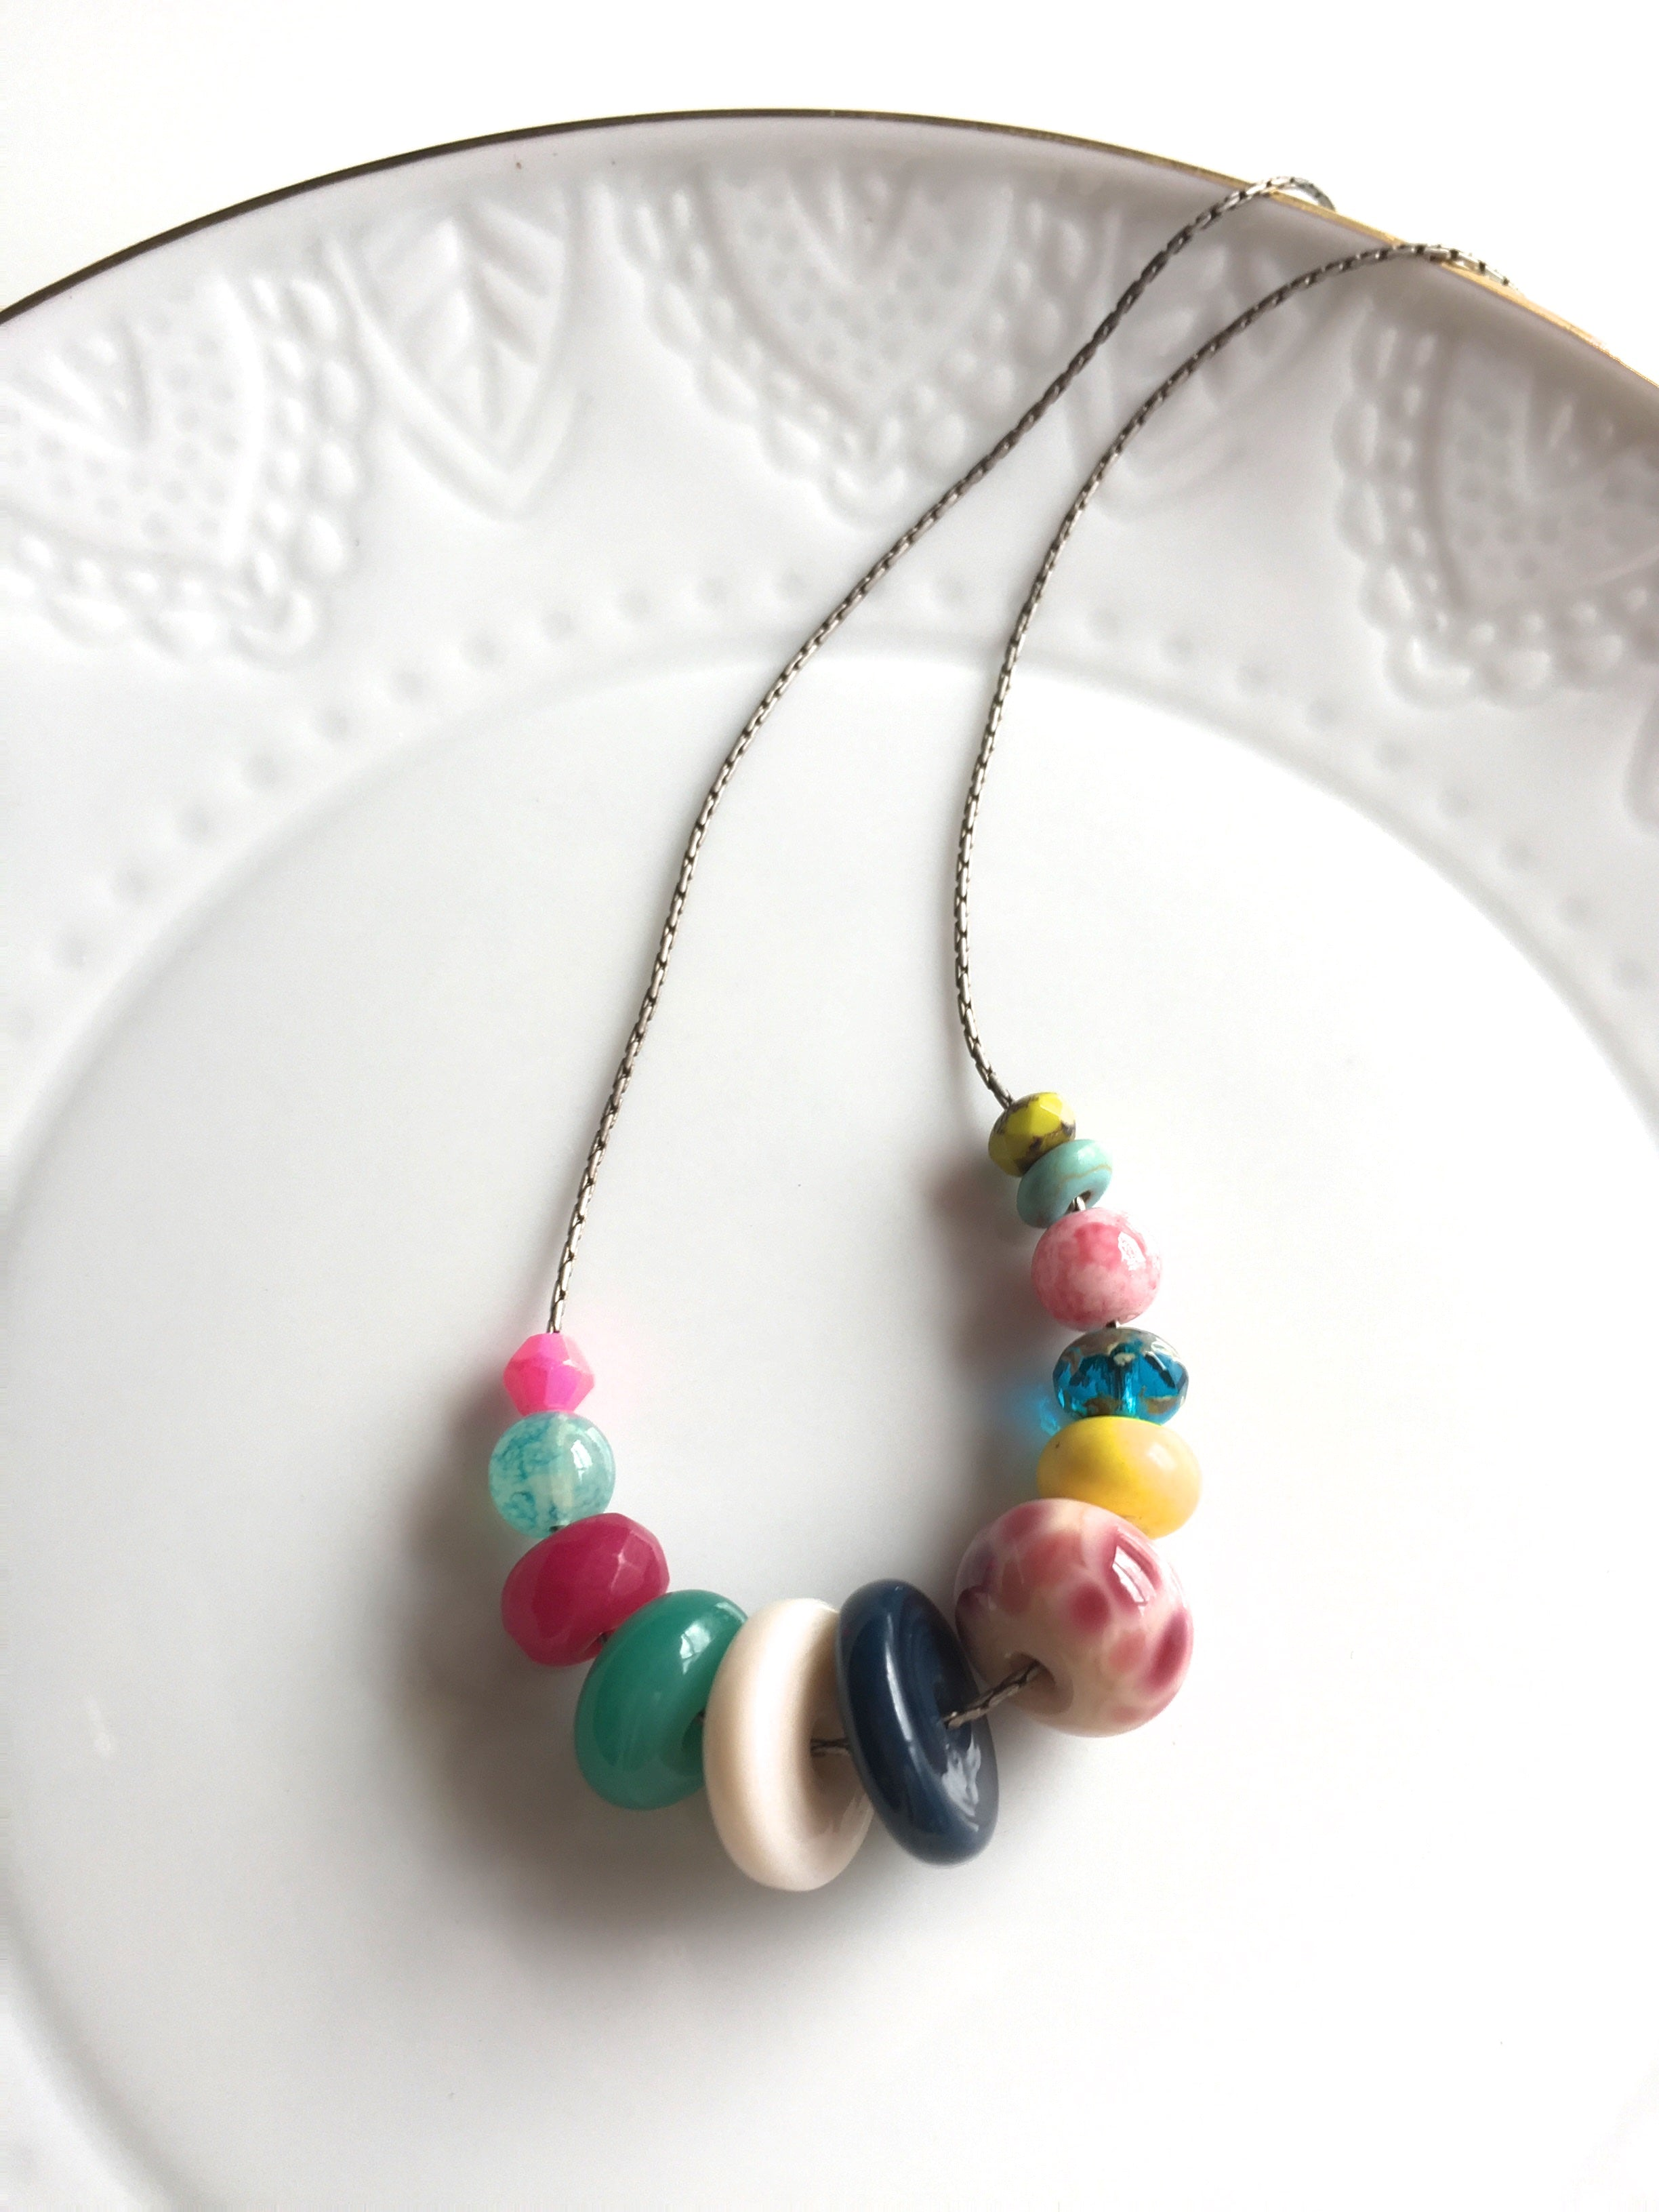 Handcrafted Colorful Lamp work glass bead and Czech glass necklace.